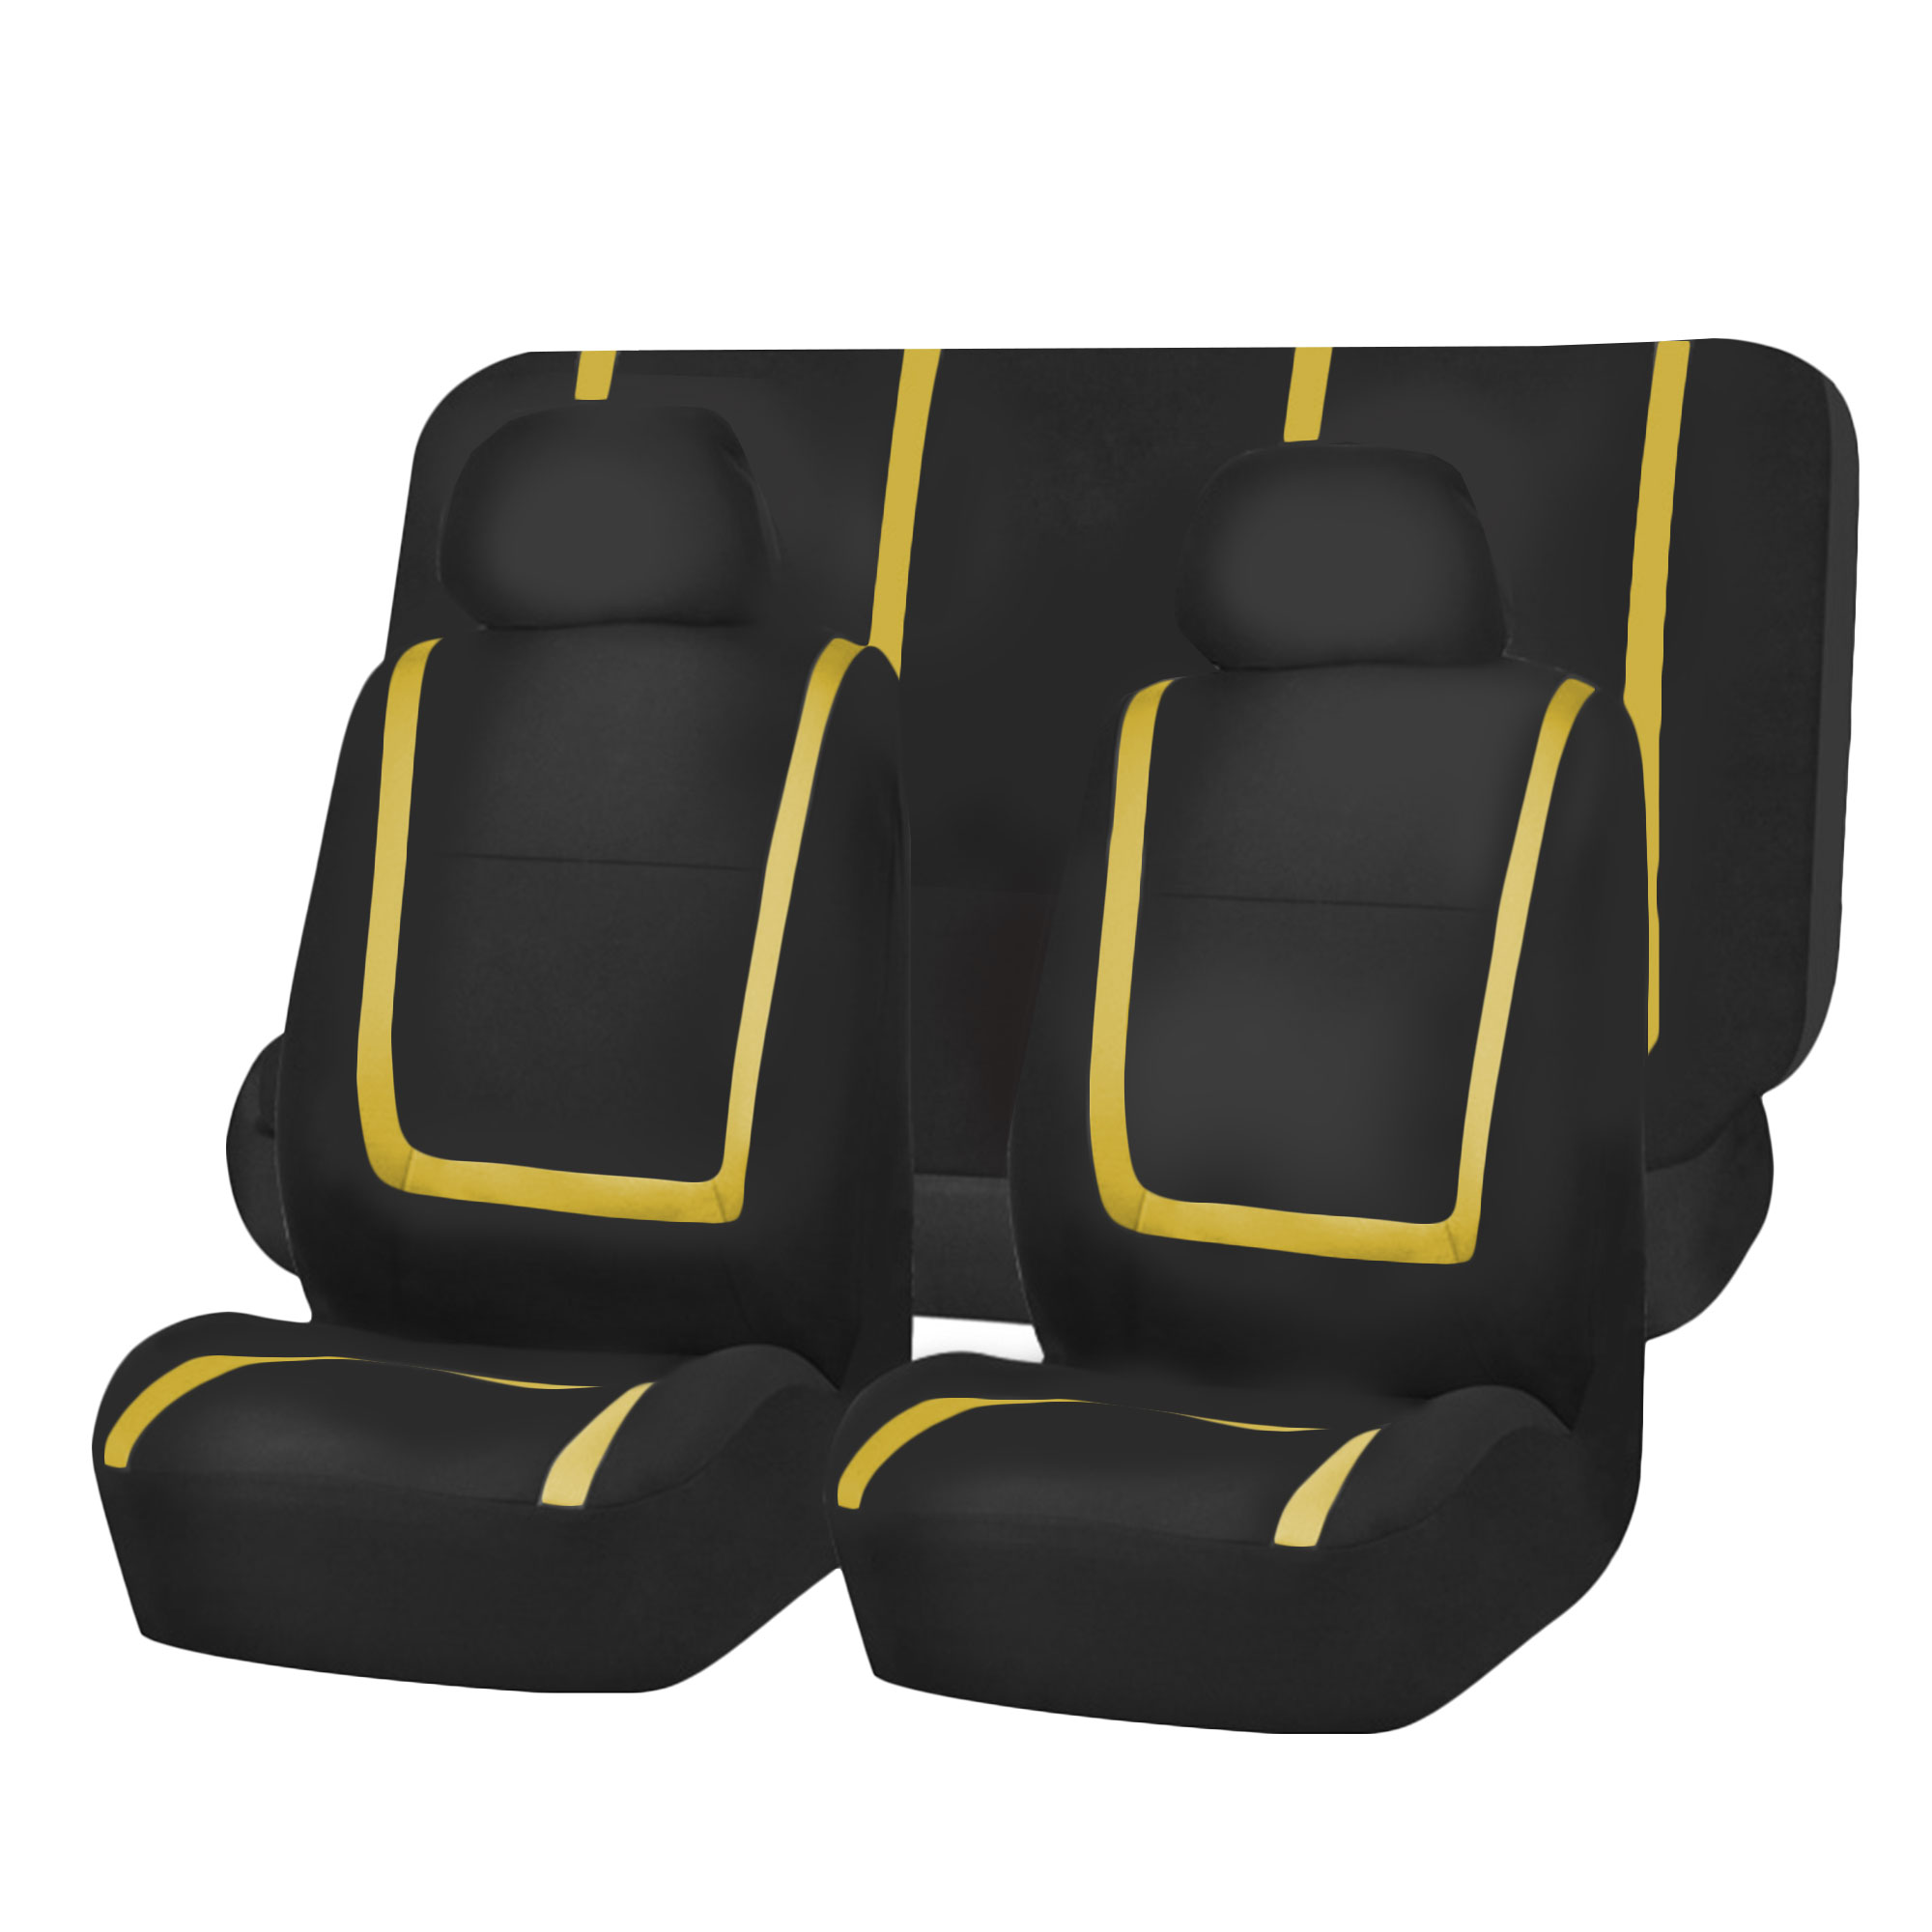 Black Amp Yellow Seat Covers For Car SUV Auto With Gray